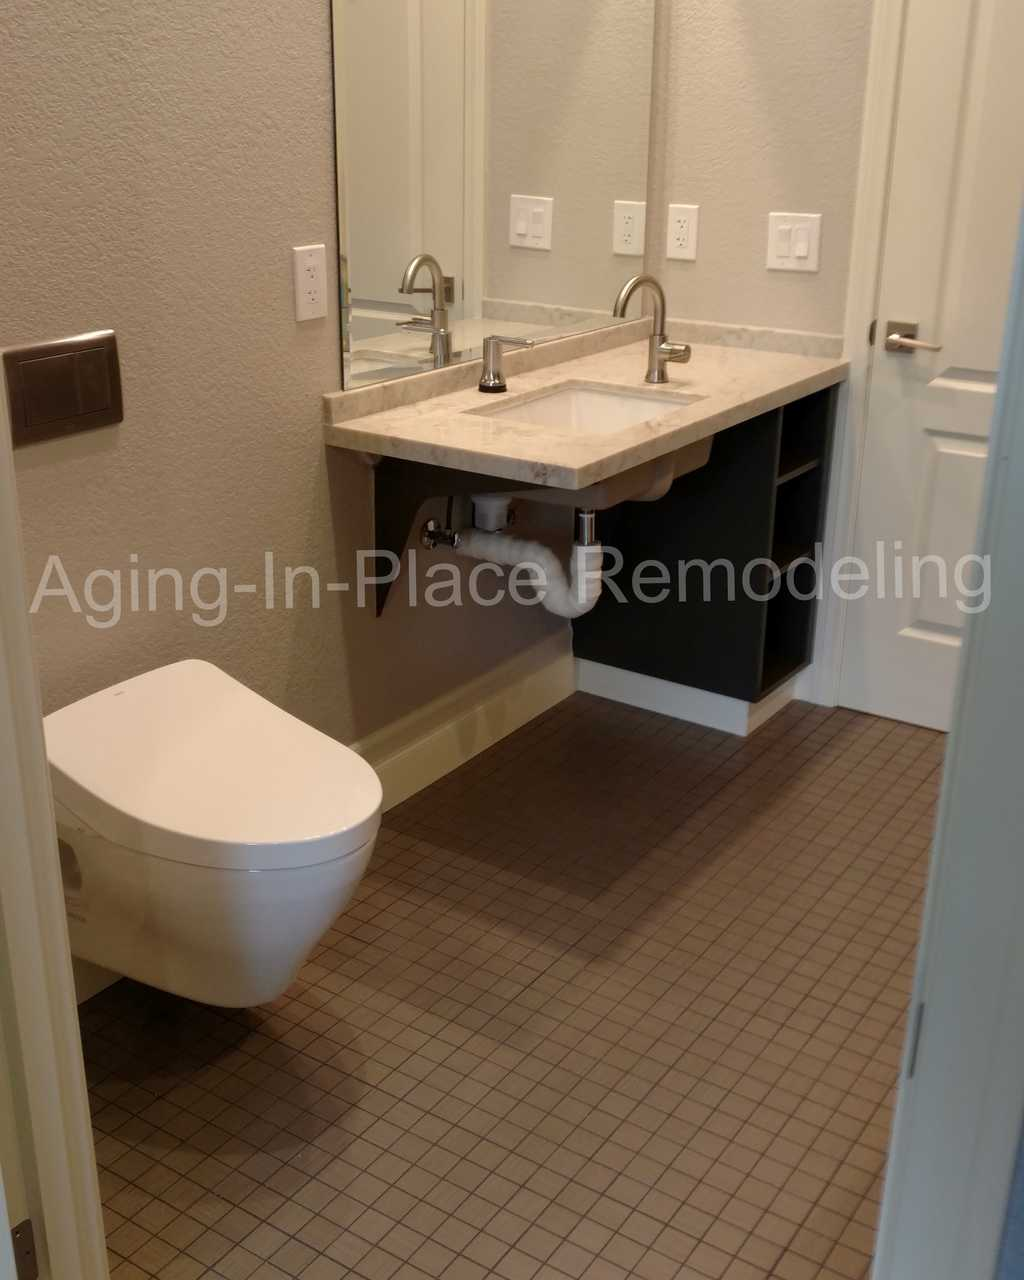 San Diego Walk-In Tubs